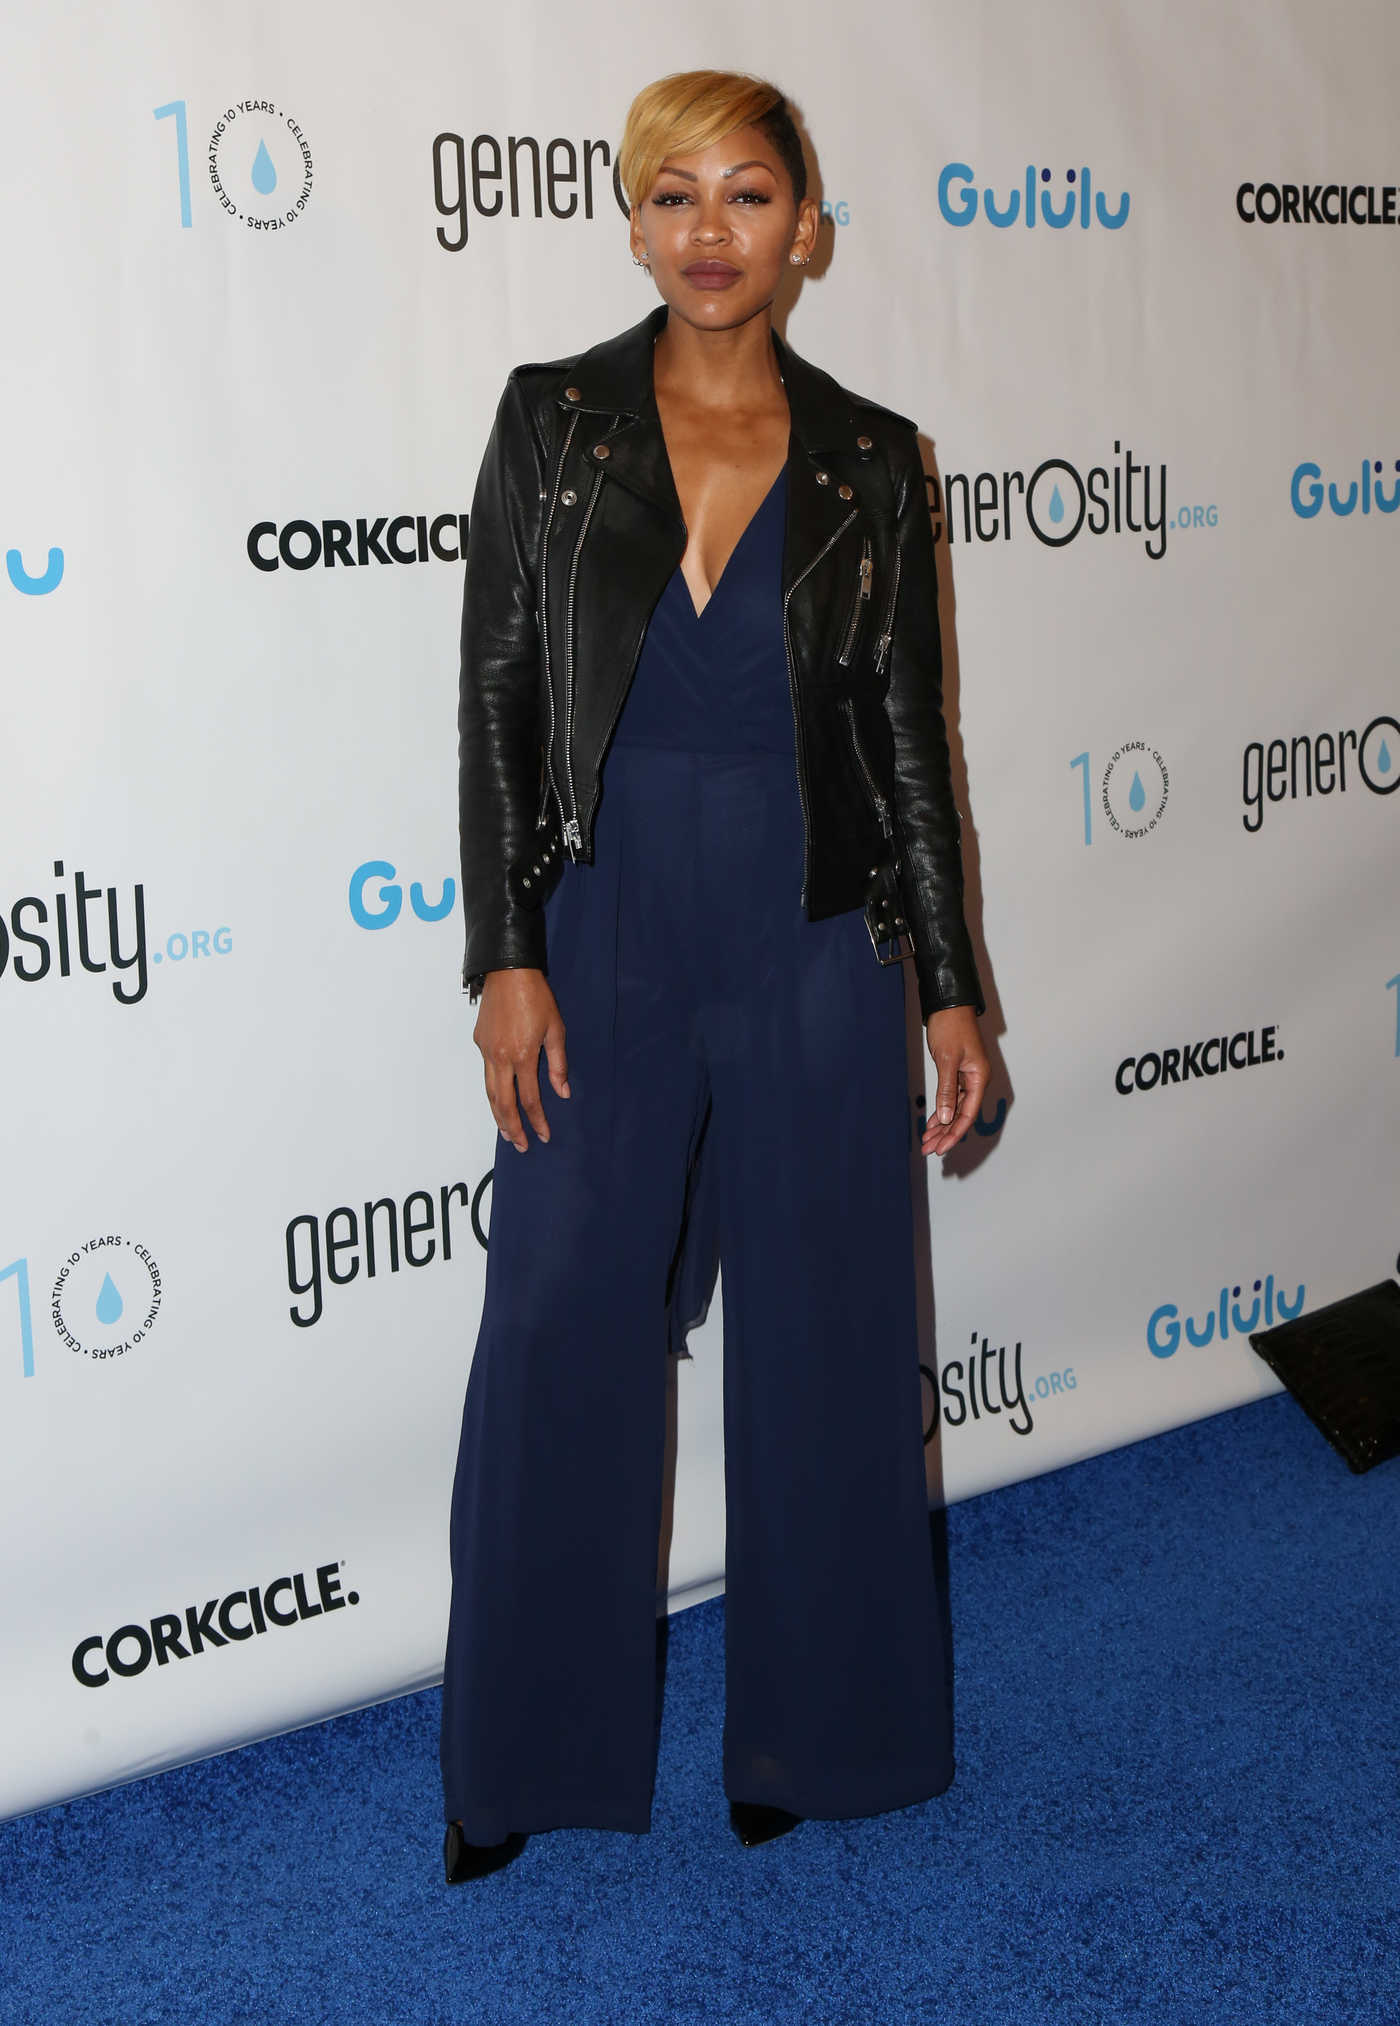 Meagan Good at a Night of Generosity Celebrating World Water Day in Los Angeles 03/21/2017